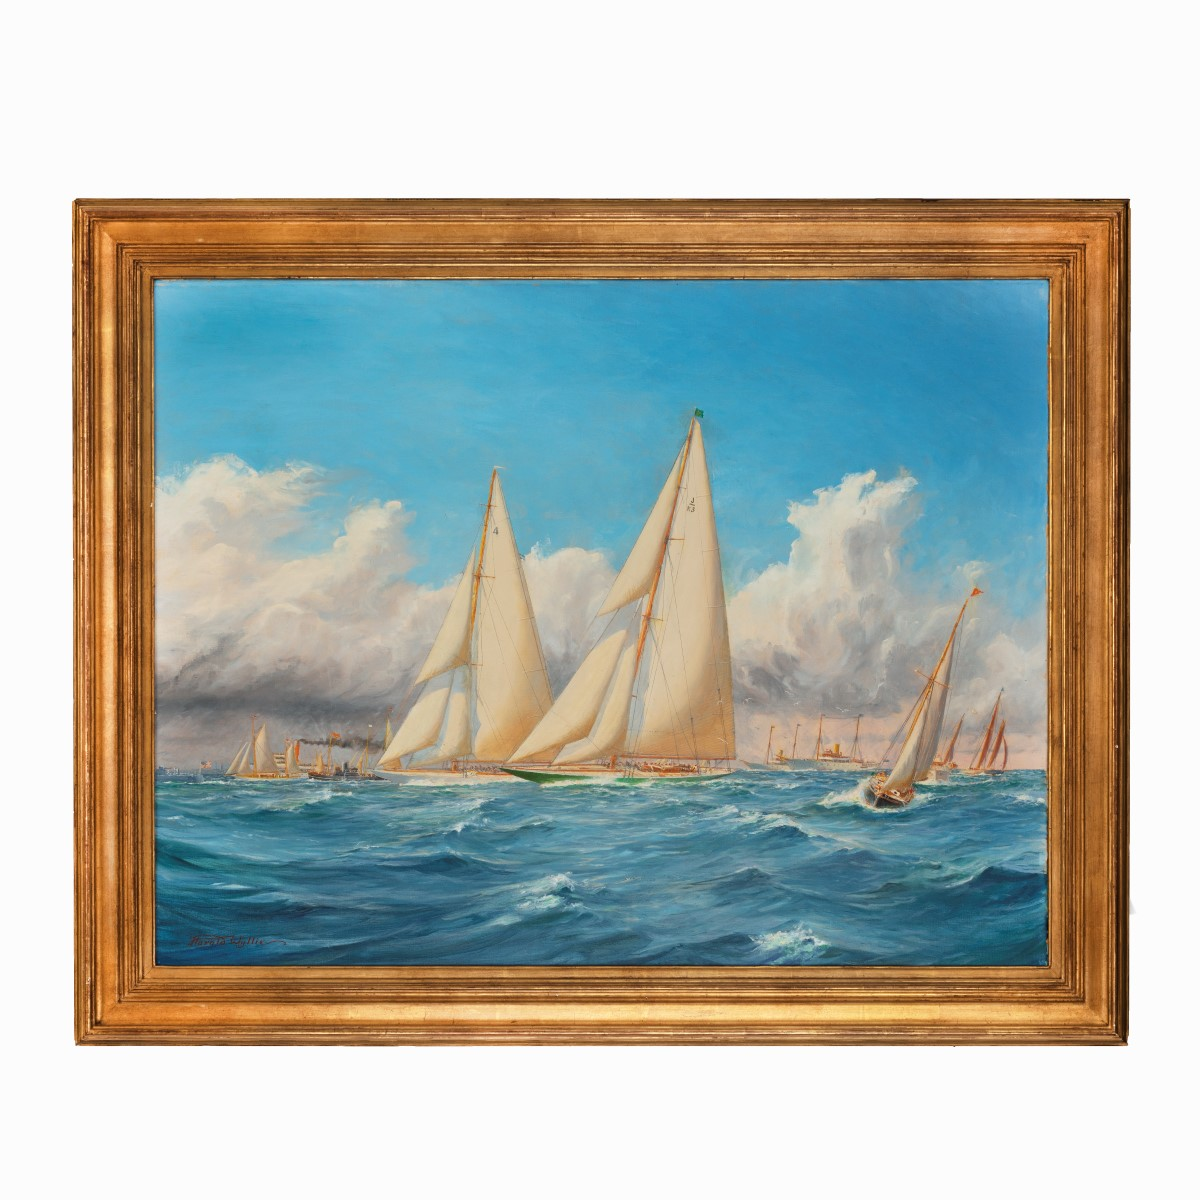 A rare painting by Harold Wyllie of 1930 America's Cup racing off Newport, Rhode Island, oil on canvase, signed 'Harold Wyllie', in a moulded gilt wood frame. English, circa 1930.